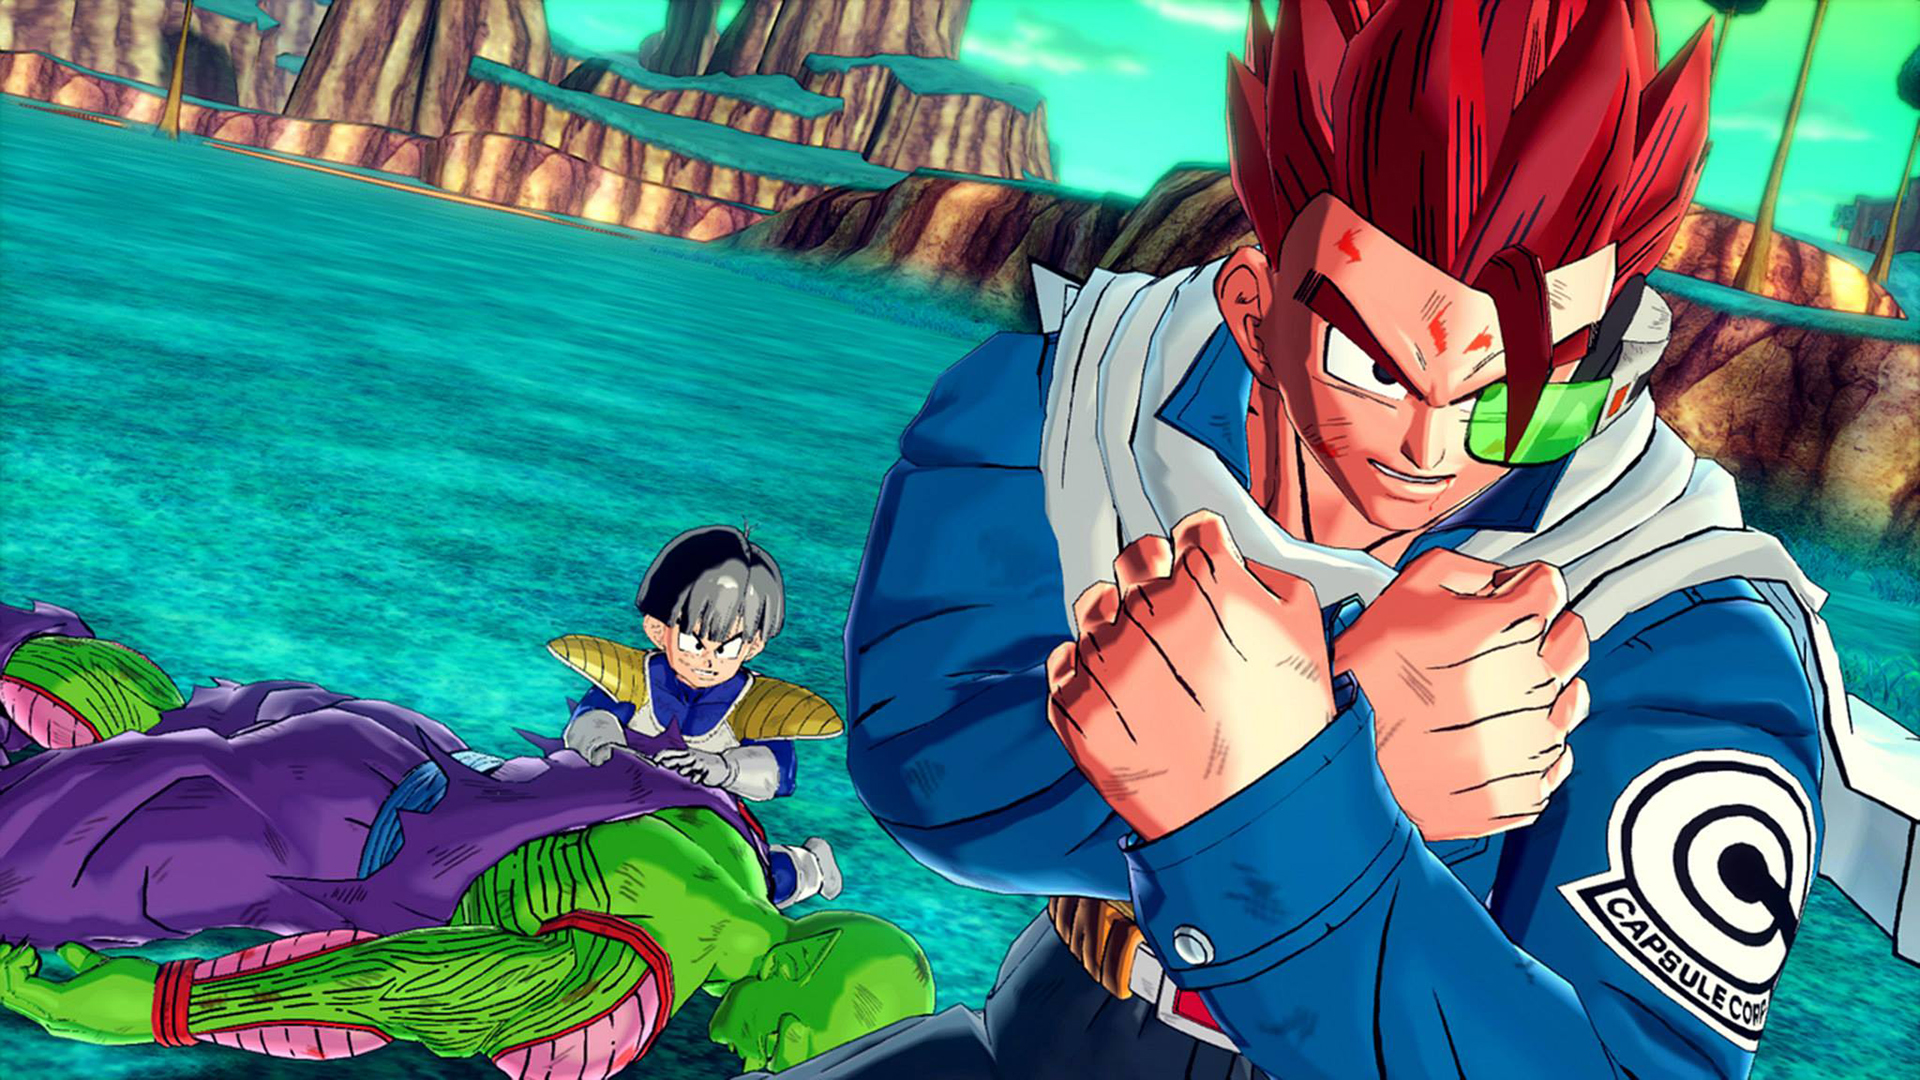 Dragon-Ball-Xenoverse-gameplay